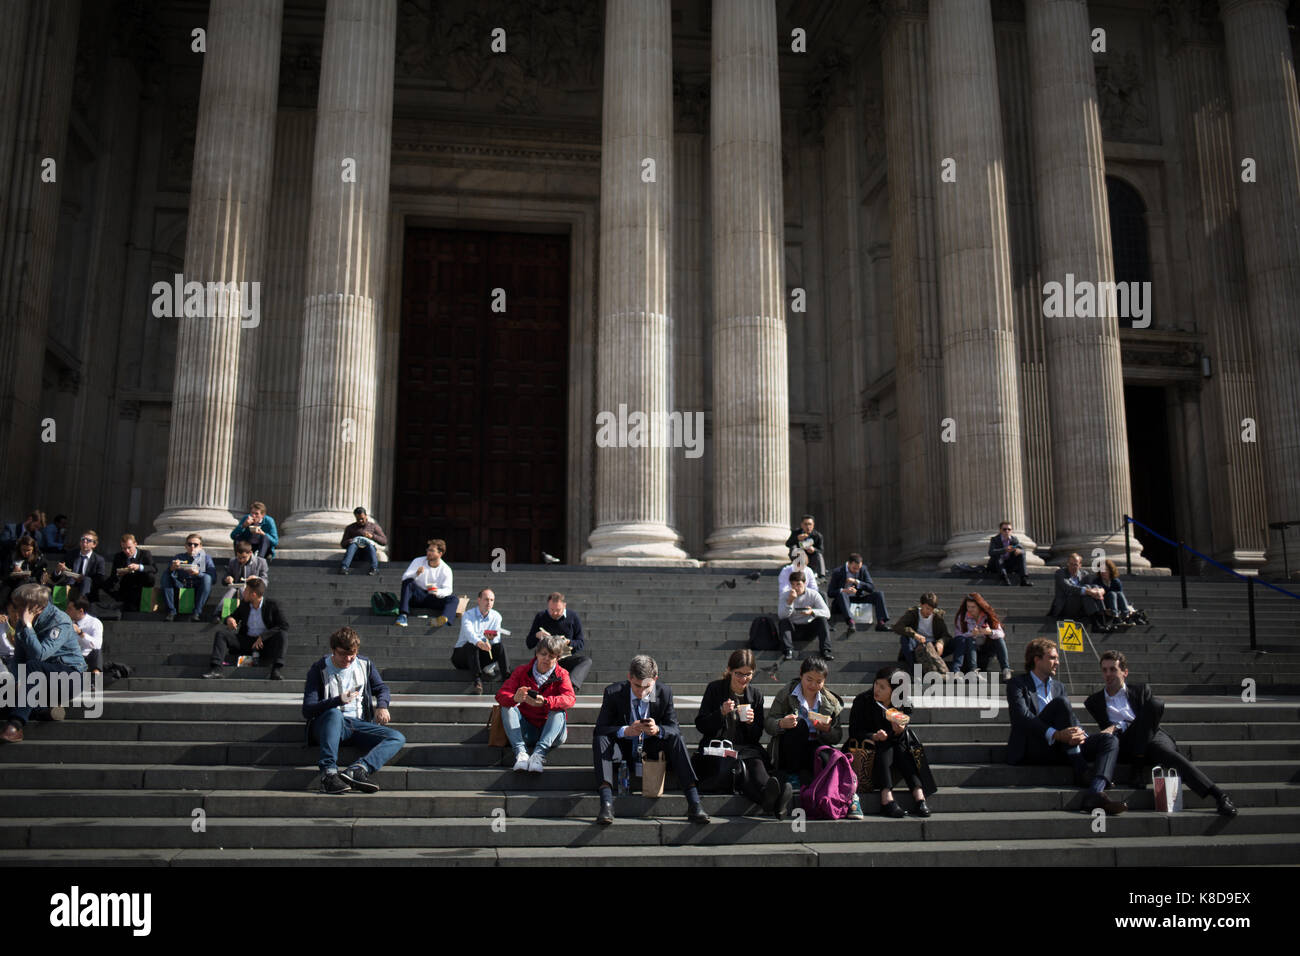 St Paul's Cathedral's steps with people sitting, in London, in England, on 19 September 2017. - Stock Image